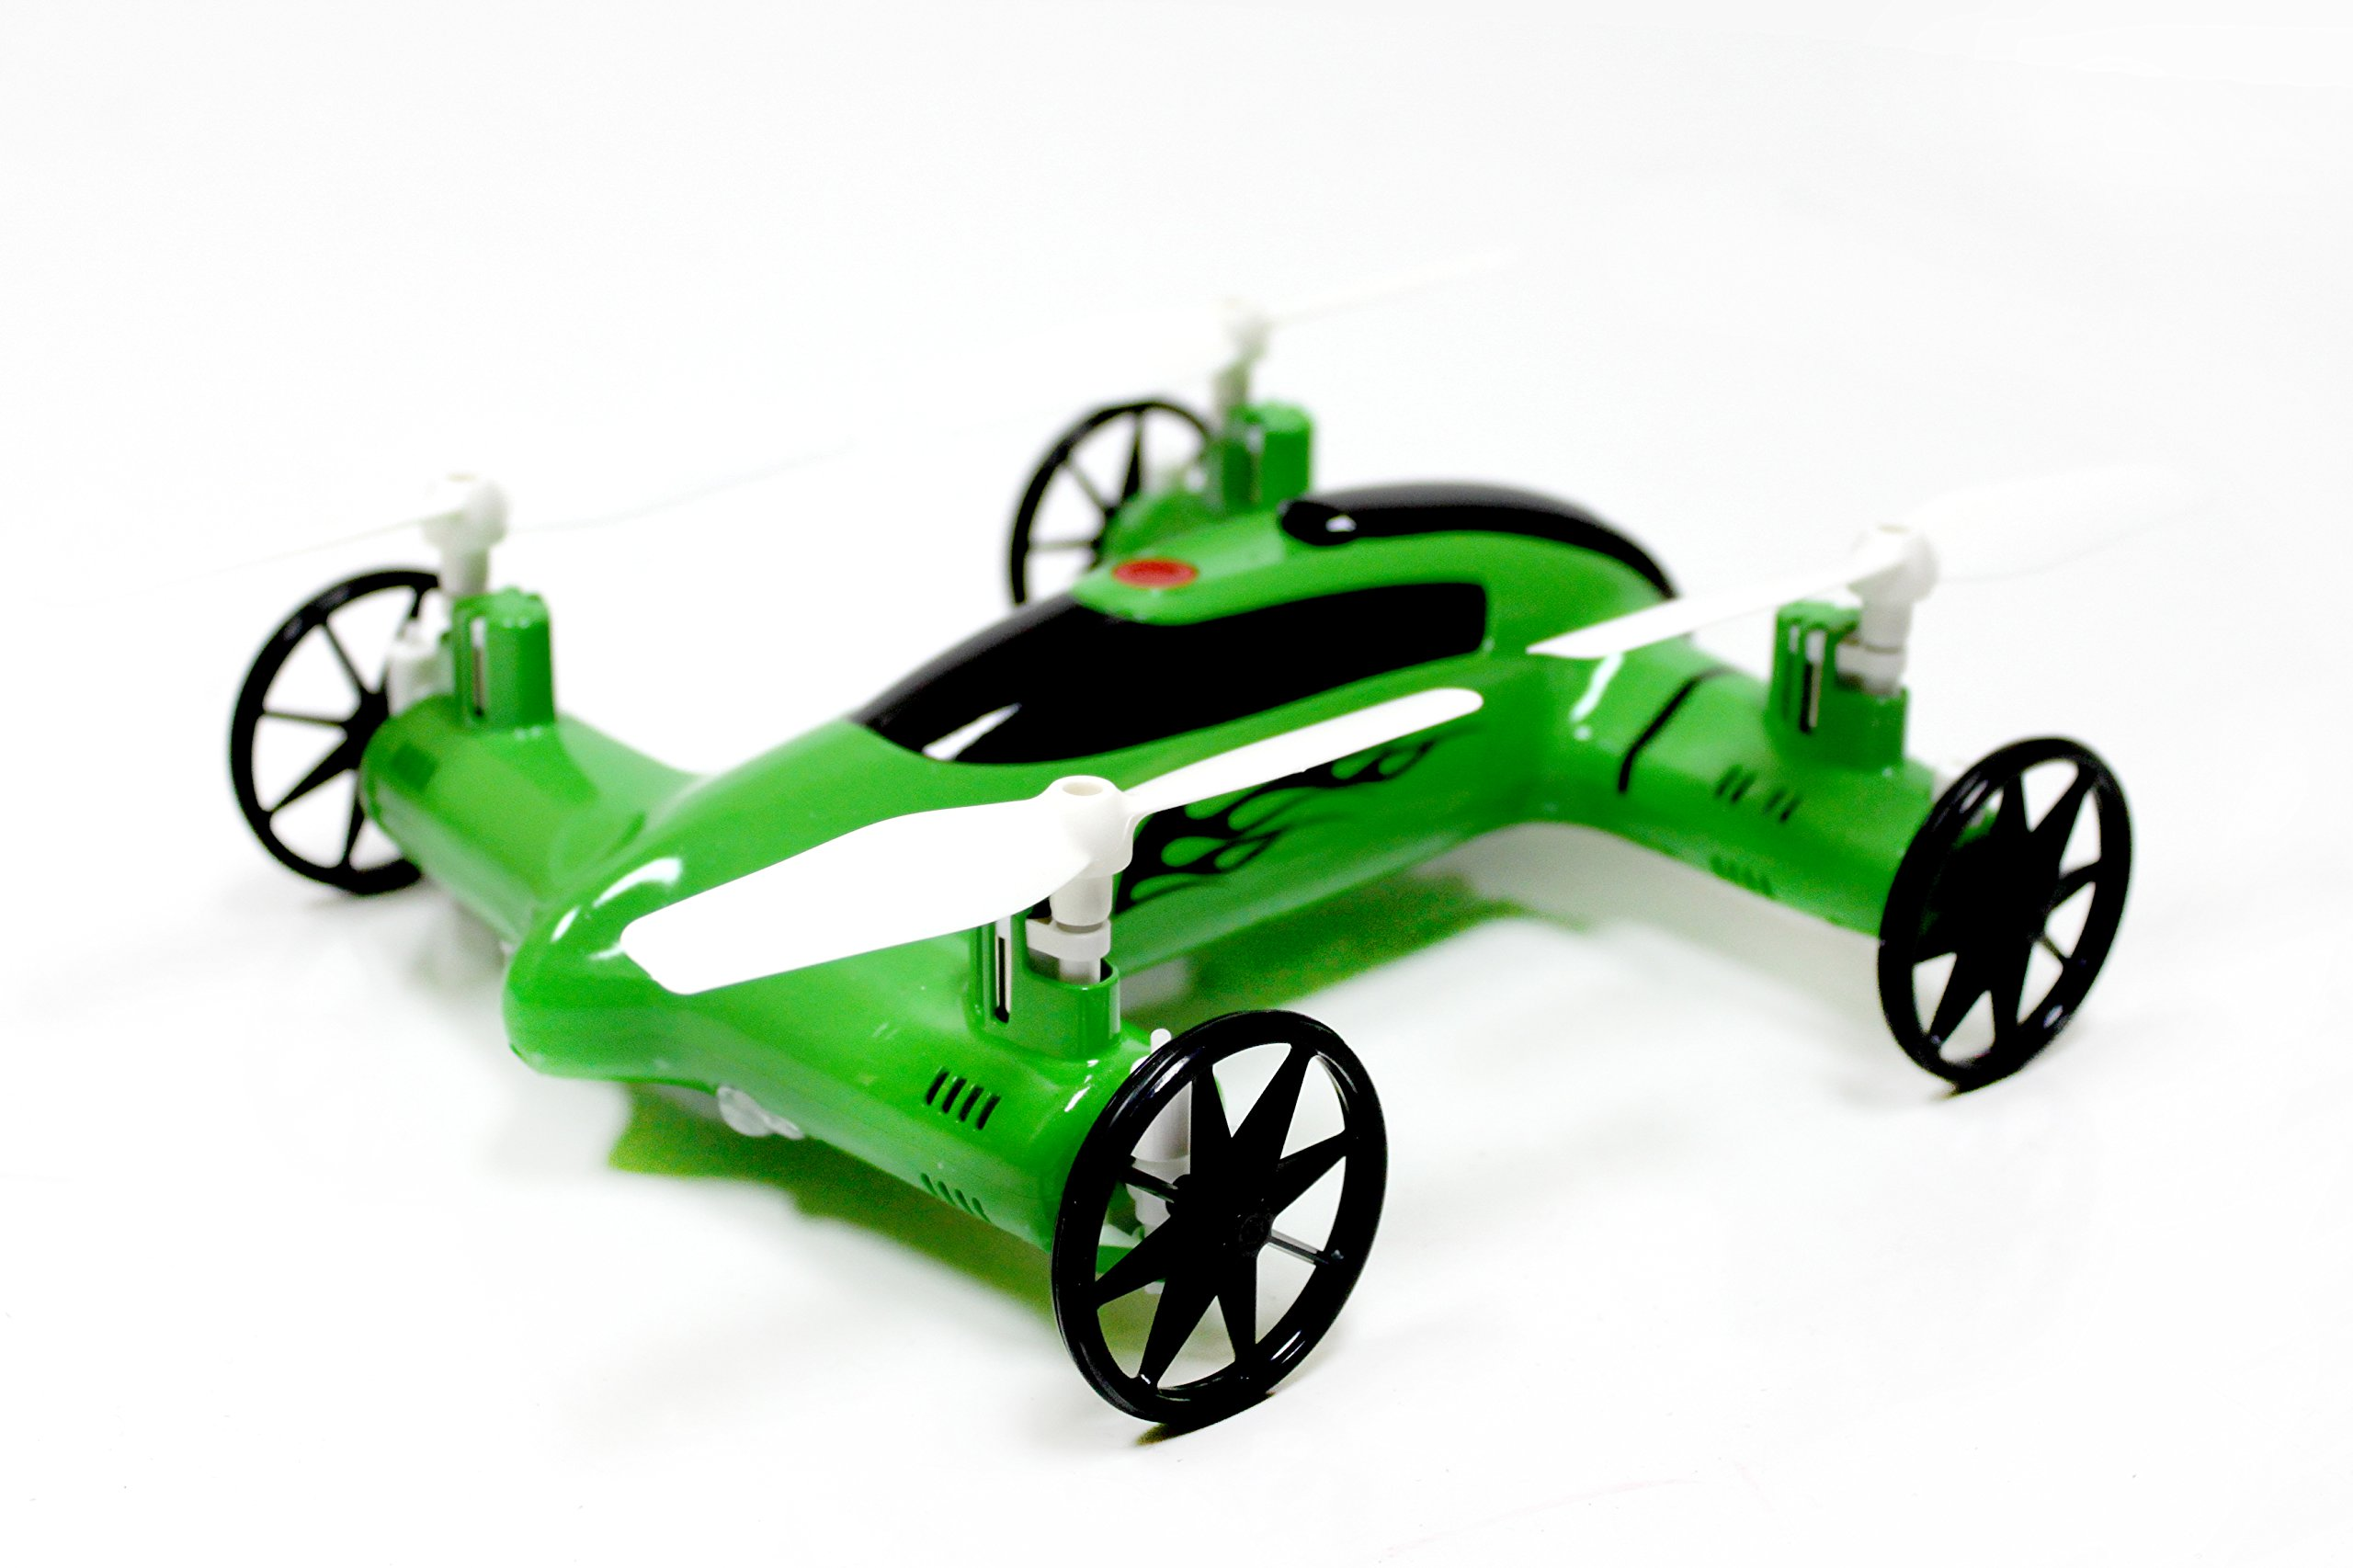 Flying Quadcopter Control Exclusive Colorway